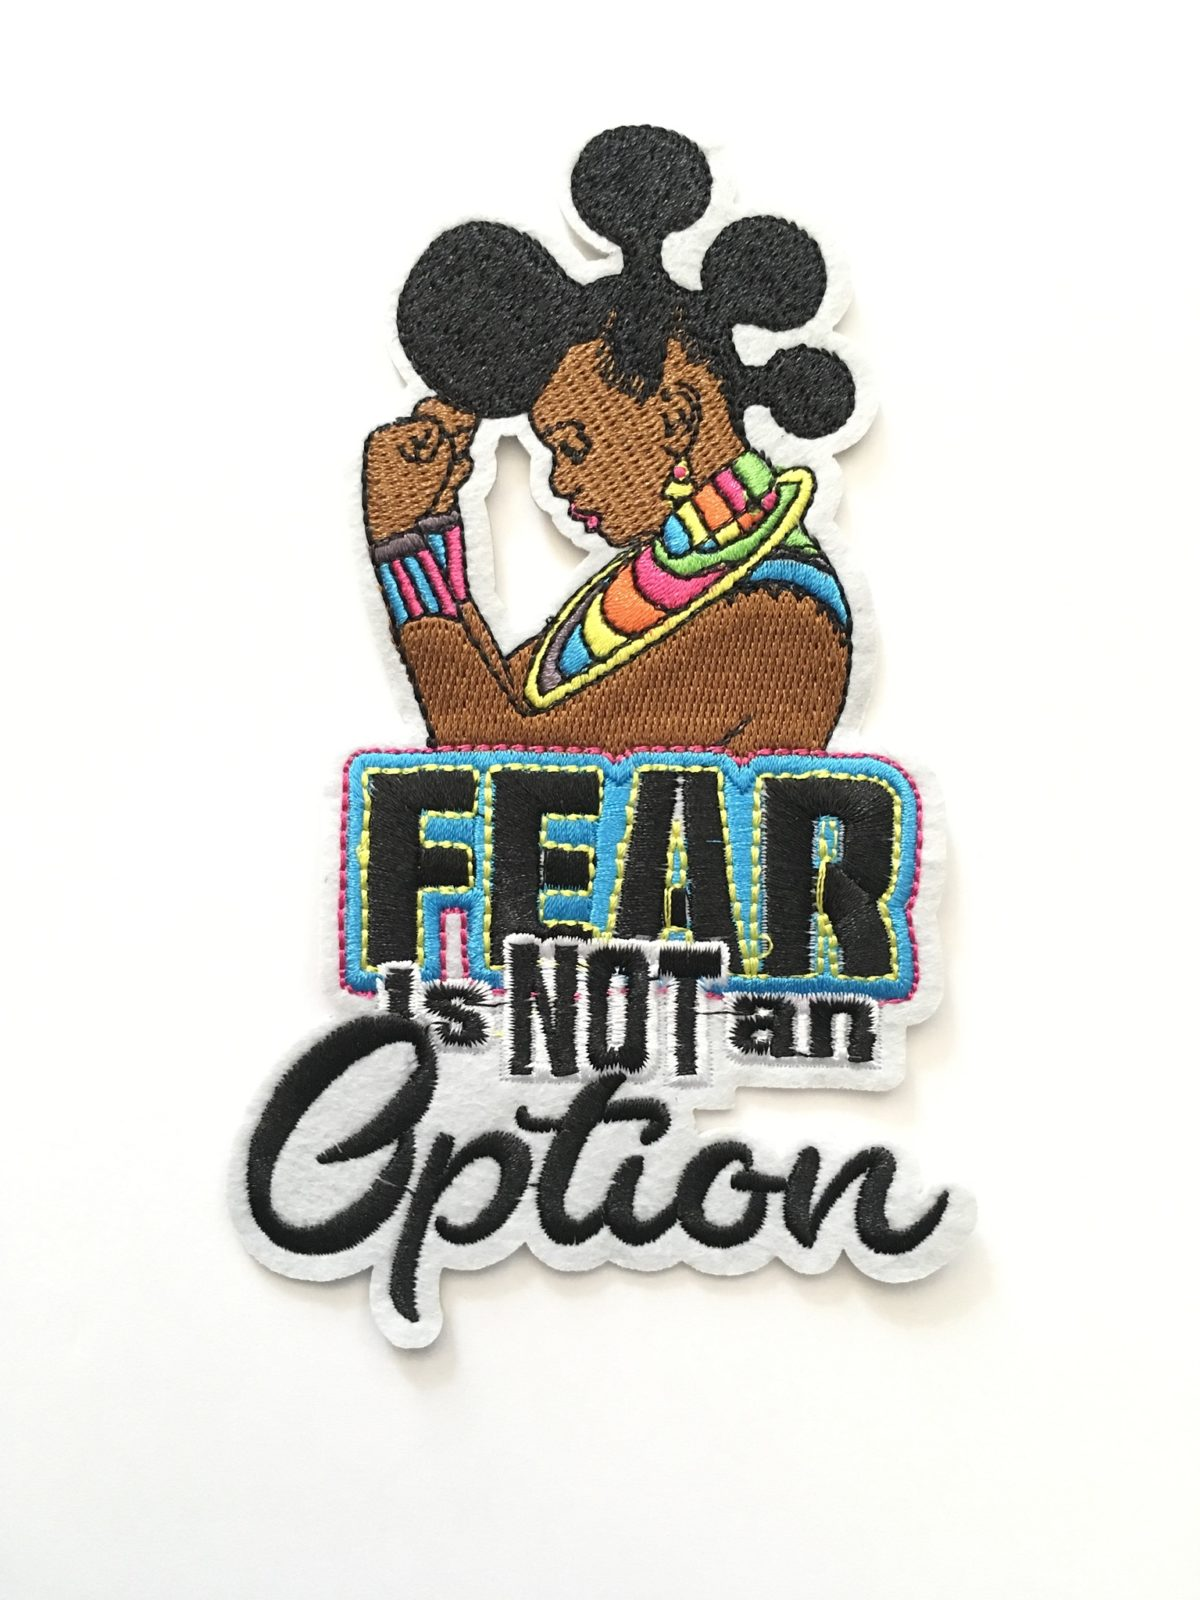 Exclusive Melanin Girl, Black Girl Patch, Iron On, DIY 1